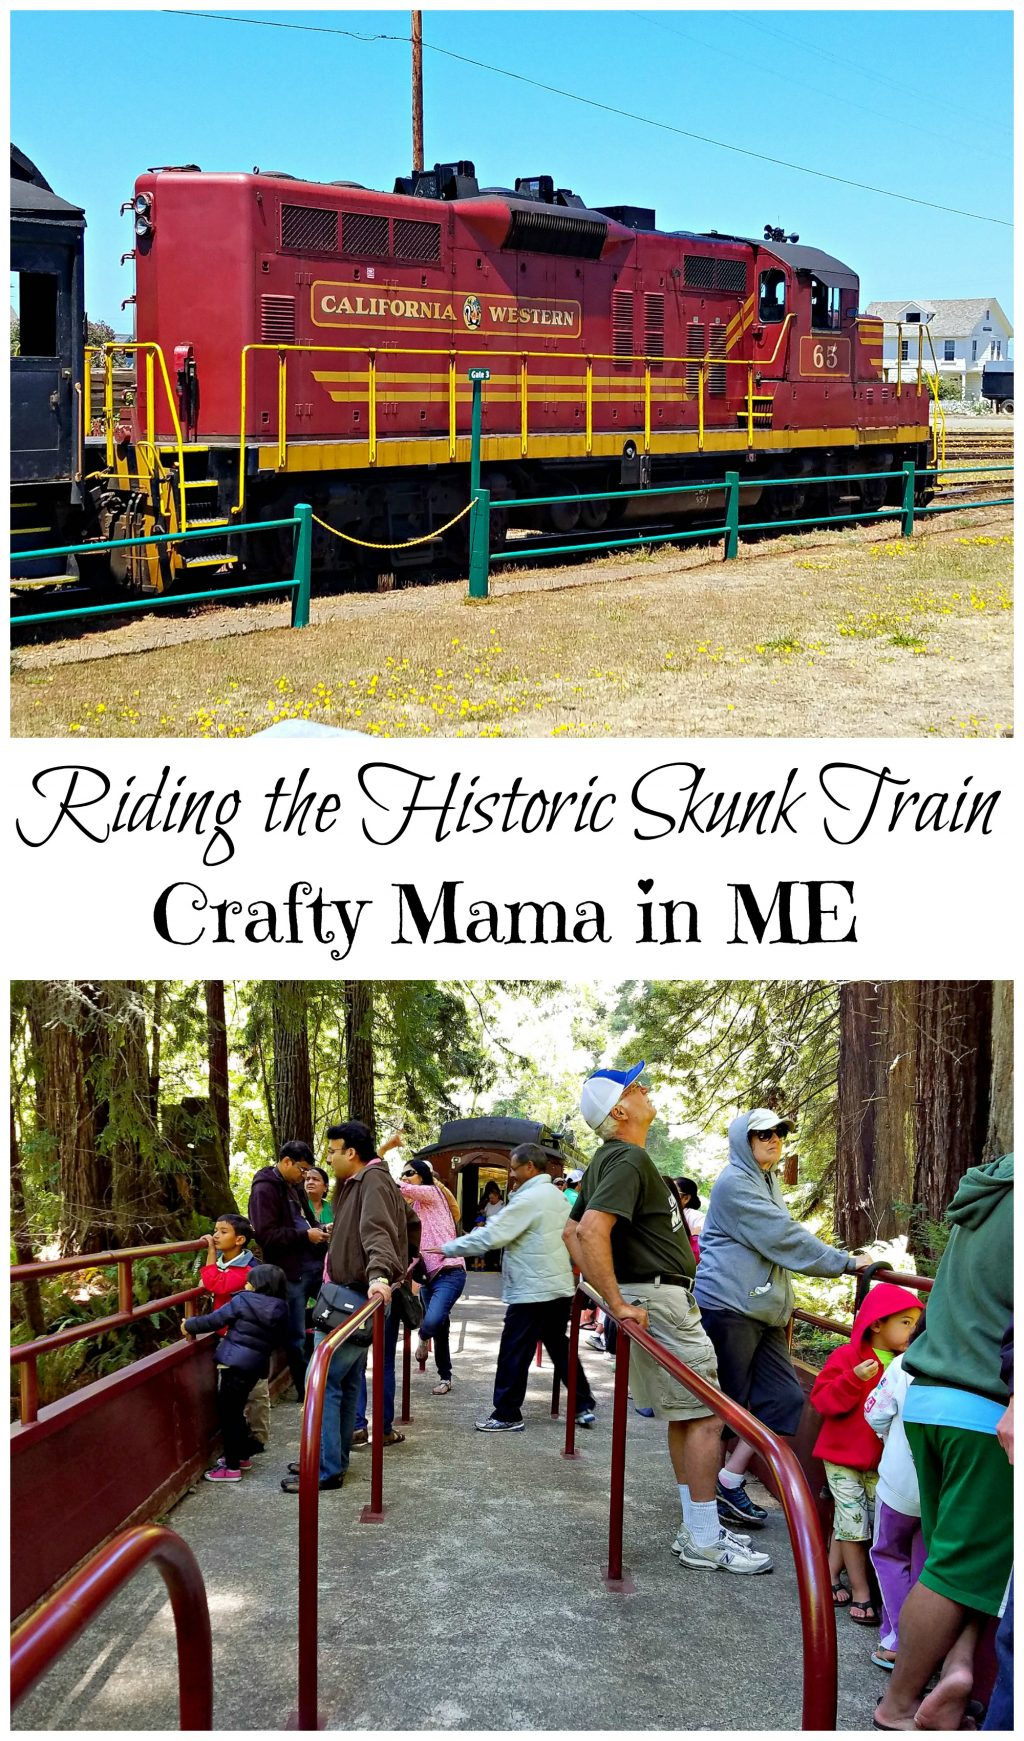 Riding the Historic Skunk Train